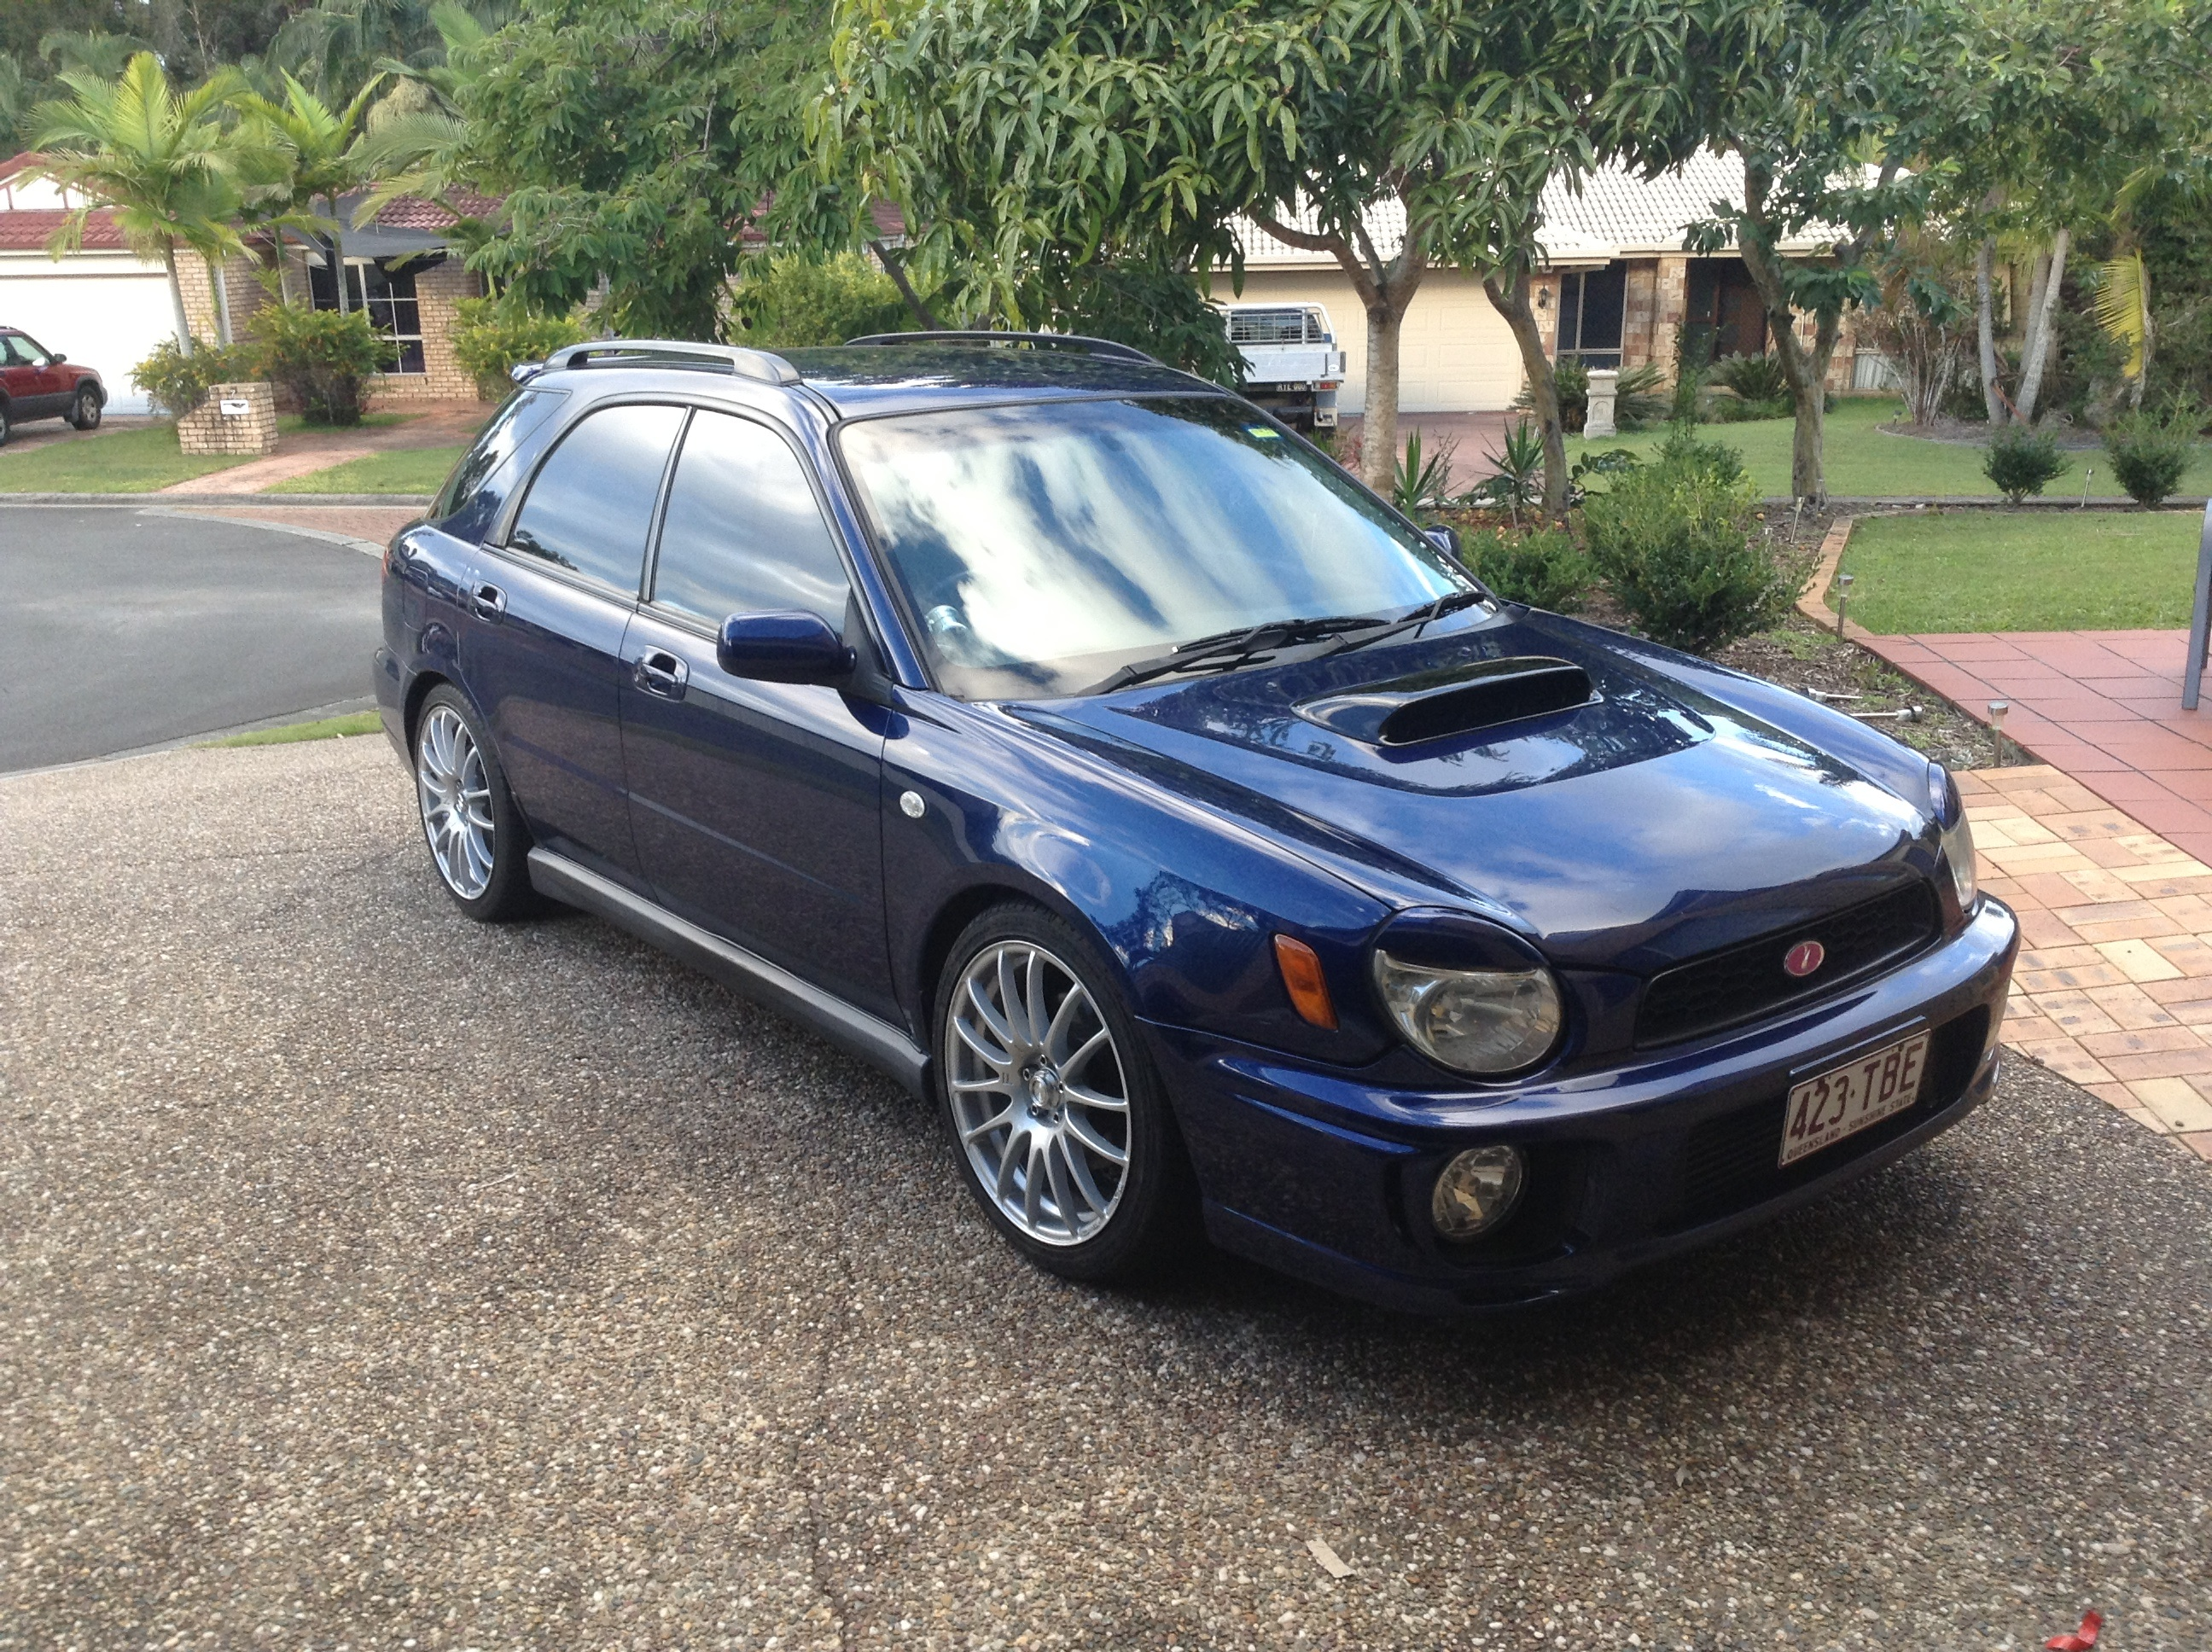 2002 subaru impreza wrx awd my02 for sale or swap qld gold coast 2233152. Black Bedroom Furniture Sets. Home Design Ideas